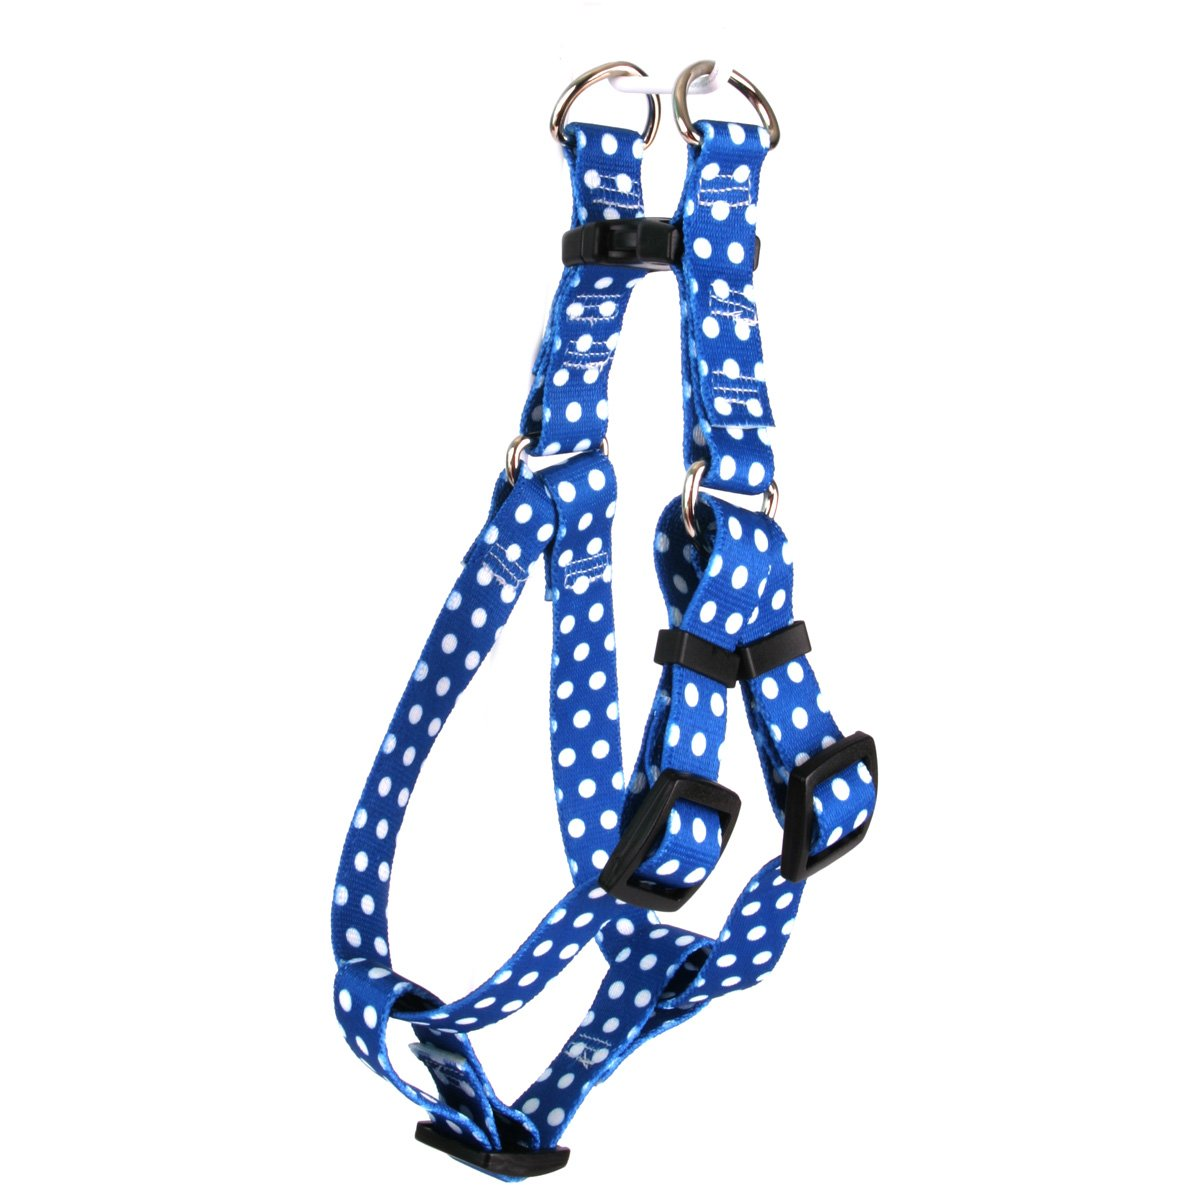 Yellow Dog Design Navy Polka Dot Step-in Dog Harness, X-Small-3/8 Wide and fits Chest of 4.5 to 9'' by Yellow Dog Design